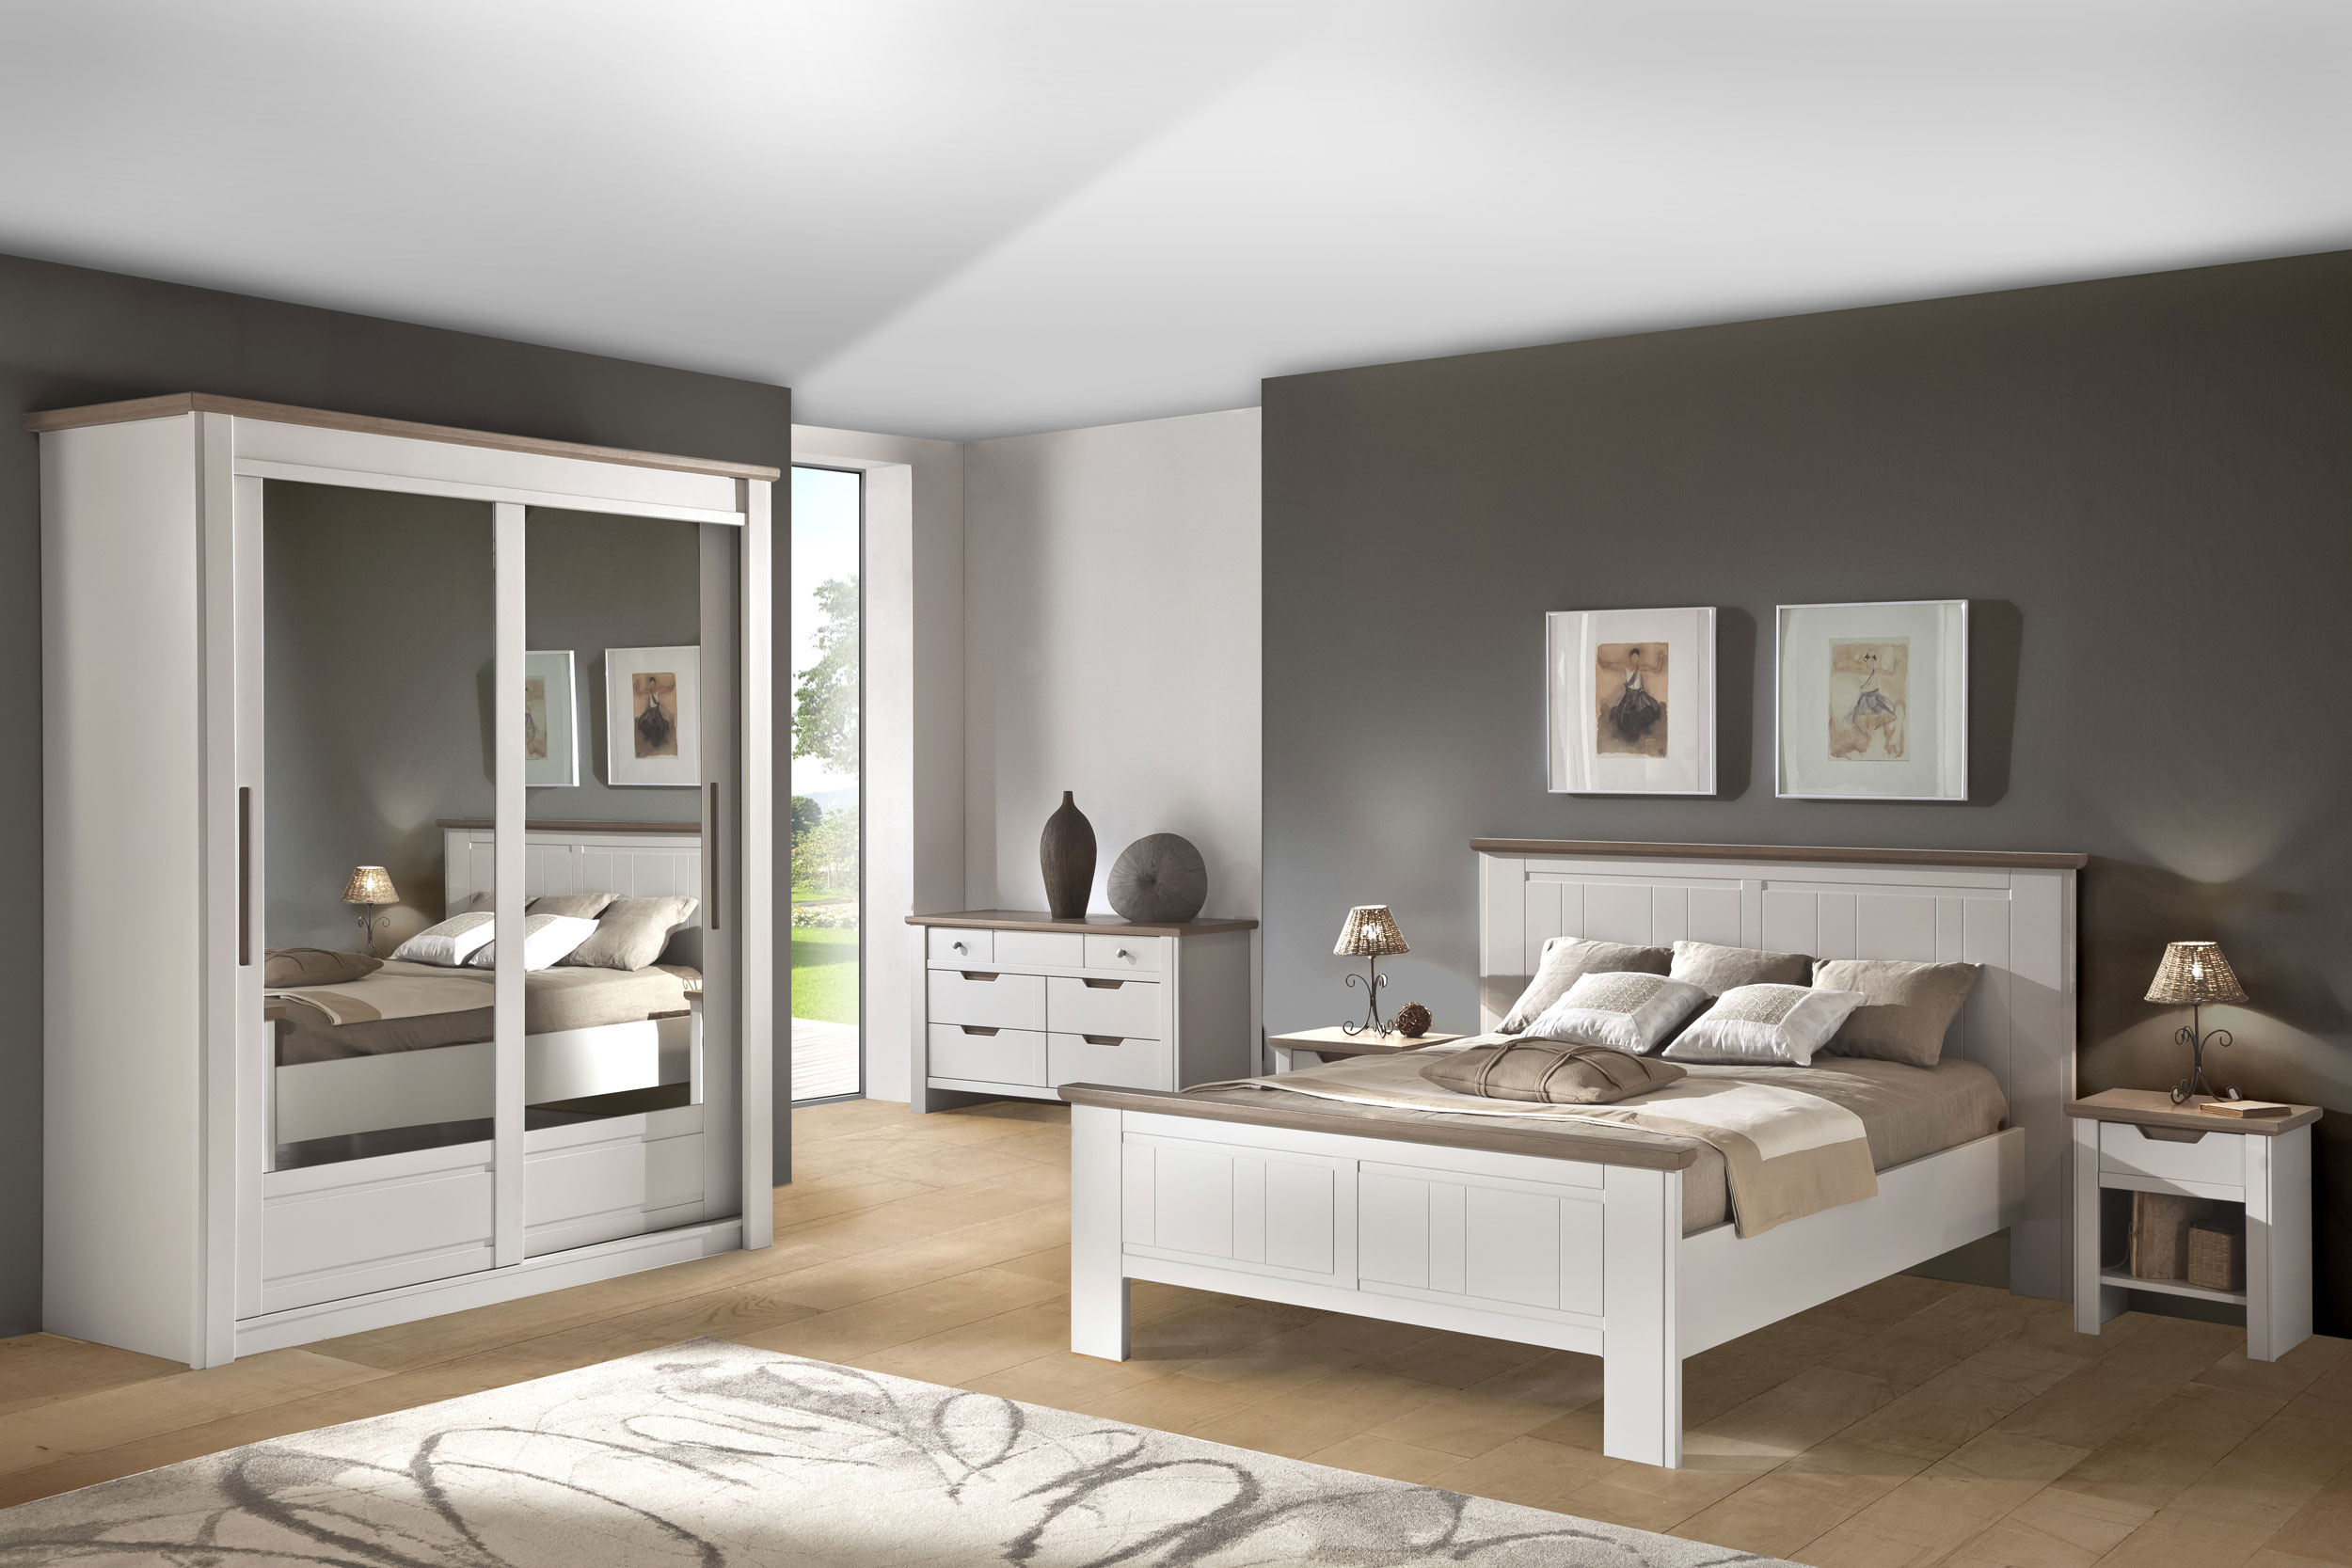 D coration chambre meuble bois exemples d 39 am nagements for Exemple de chambre adulte